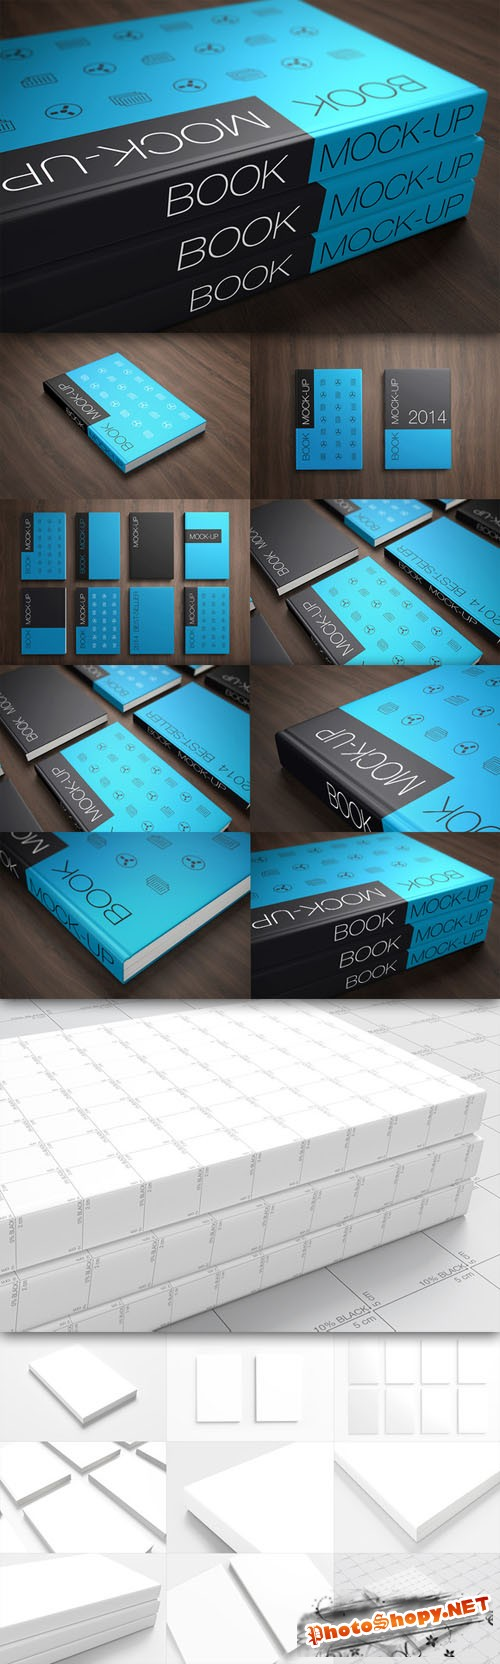 CreativeMarket - Book Cover Mock-up's